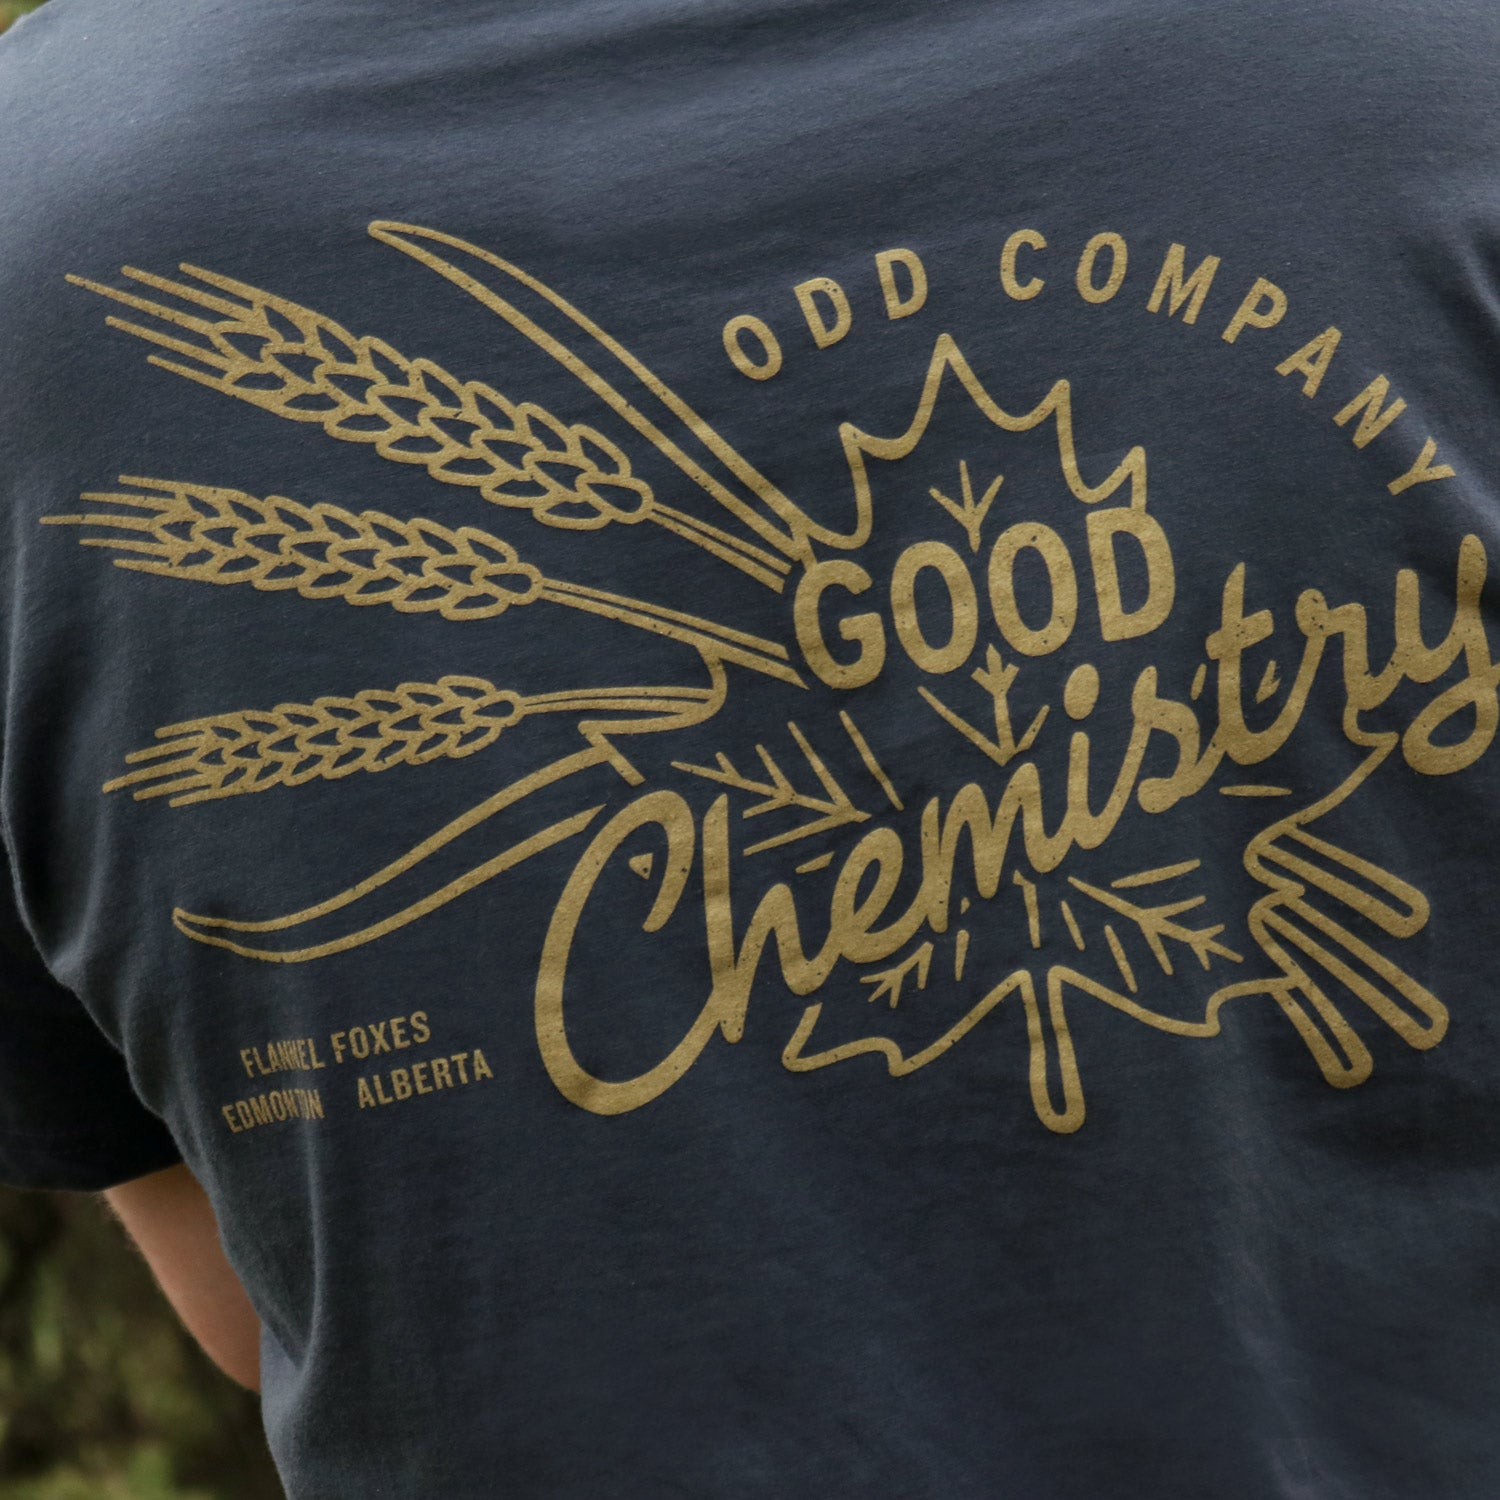 Flannel Foxes X Odd Company – Good Chemistry Tee